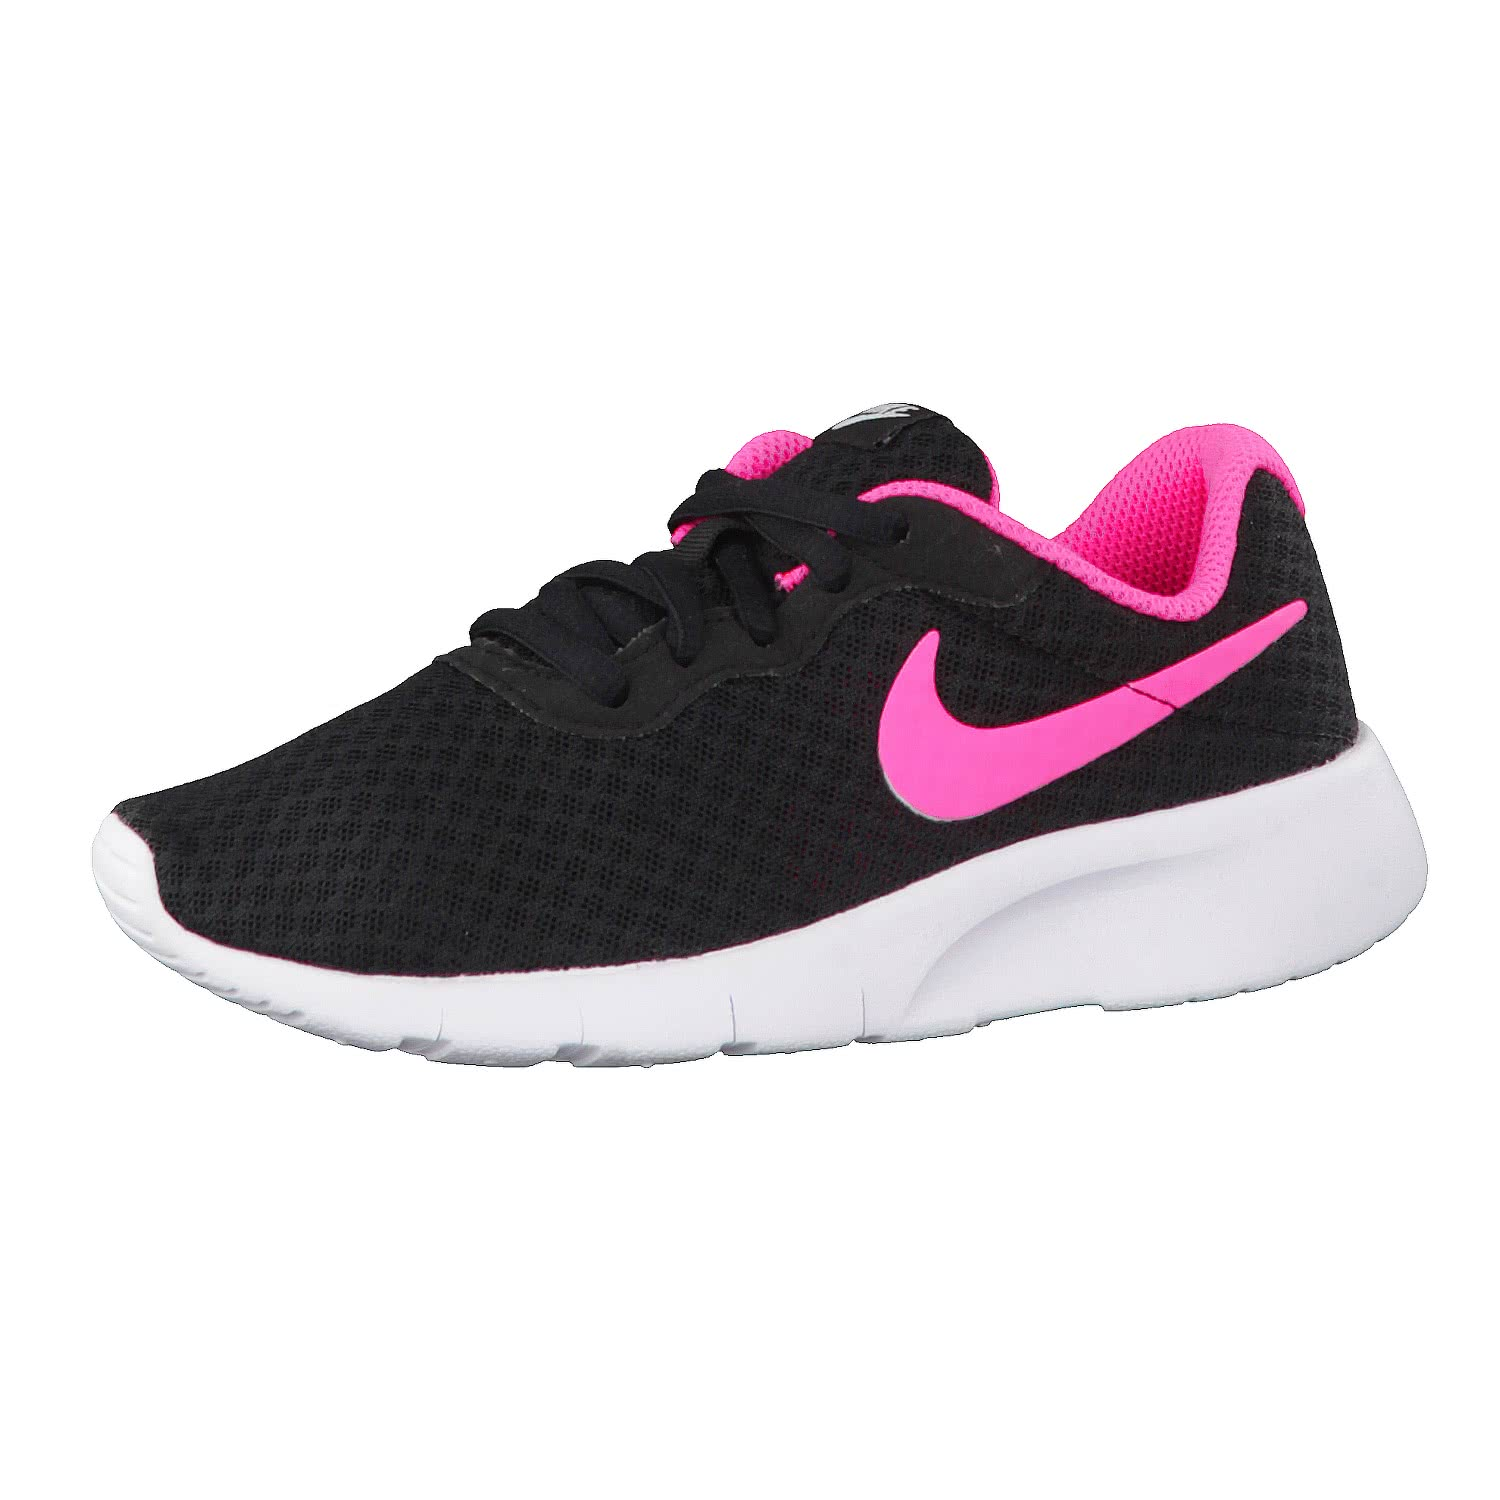 low priced 8c16b abf9f Nike Mädchen Sneaker Tanjun (PS) 818385  cortexpower.de